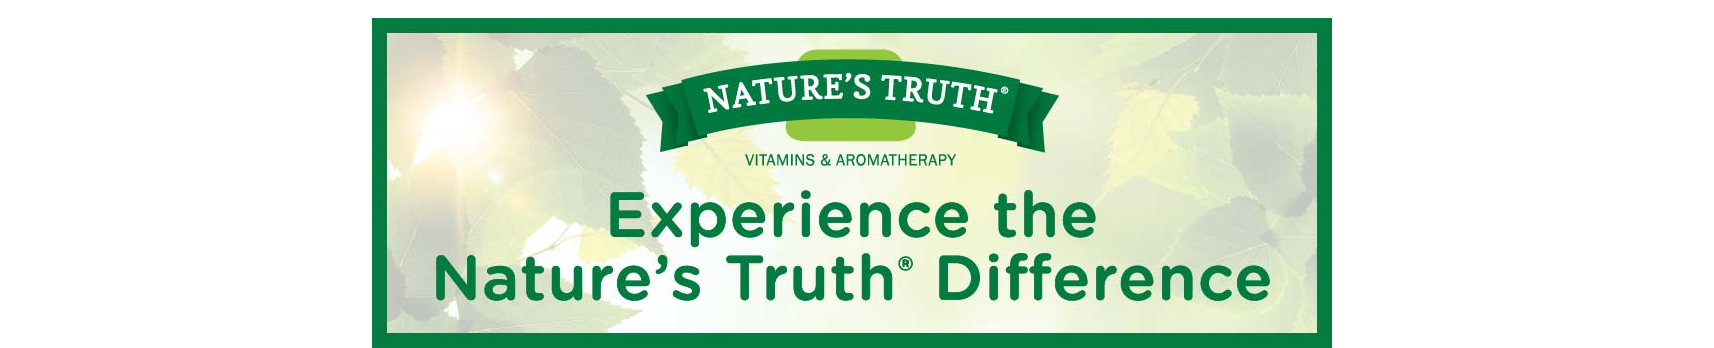 Nature's_Truth_Vitamins_Aromatherapy